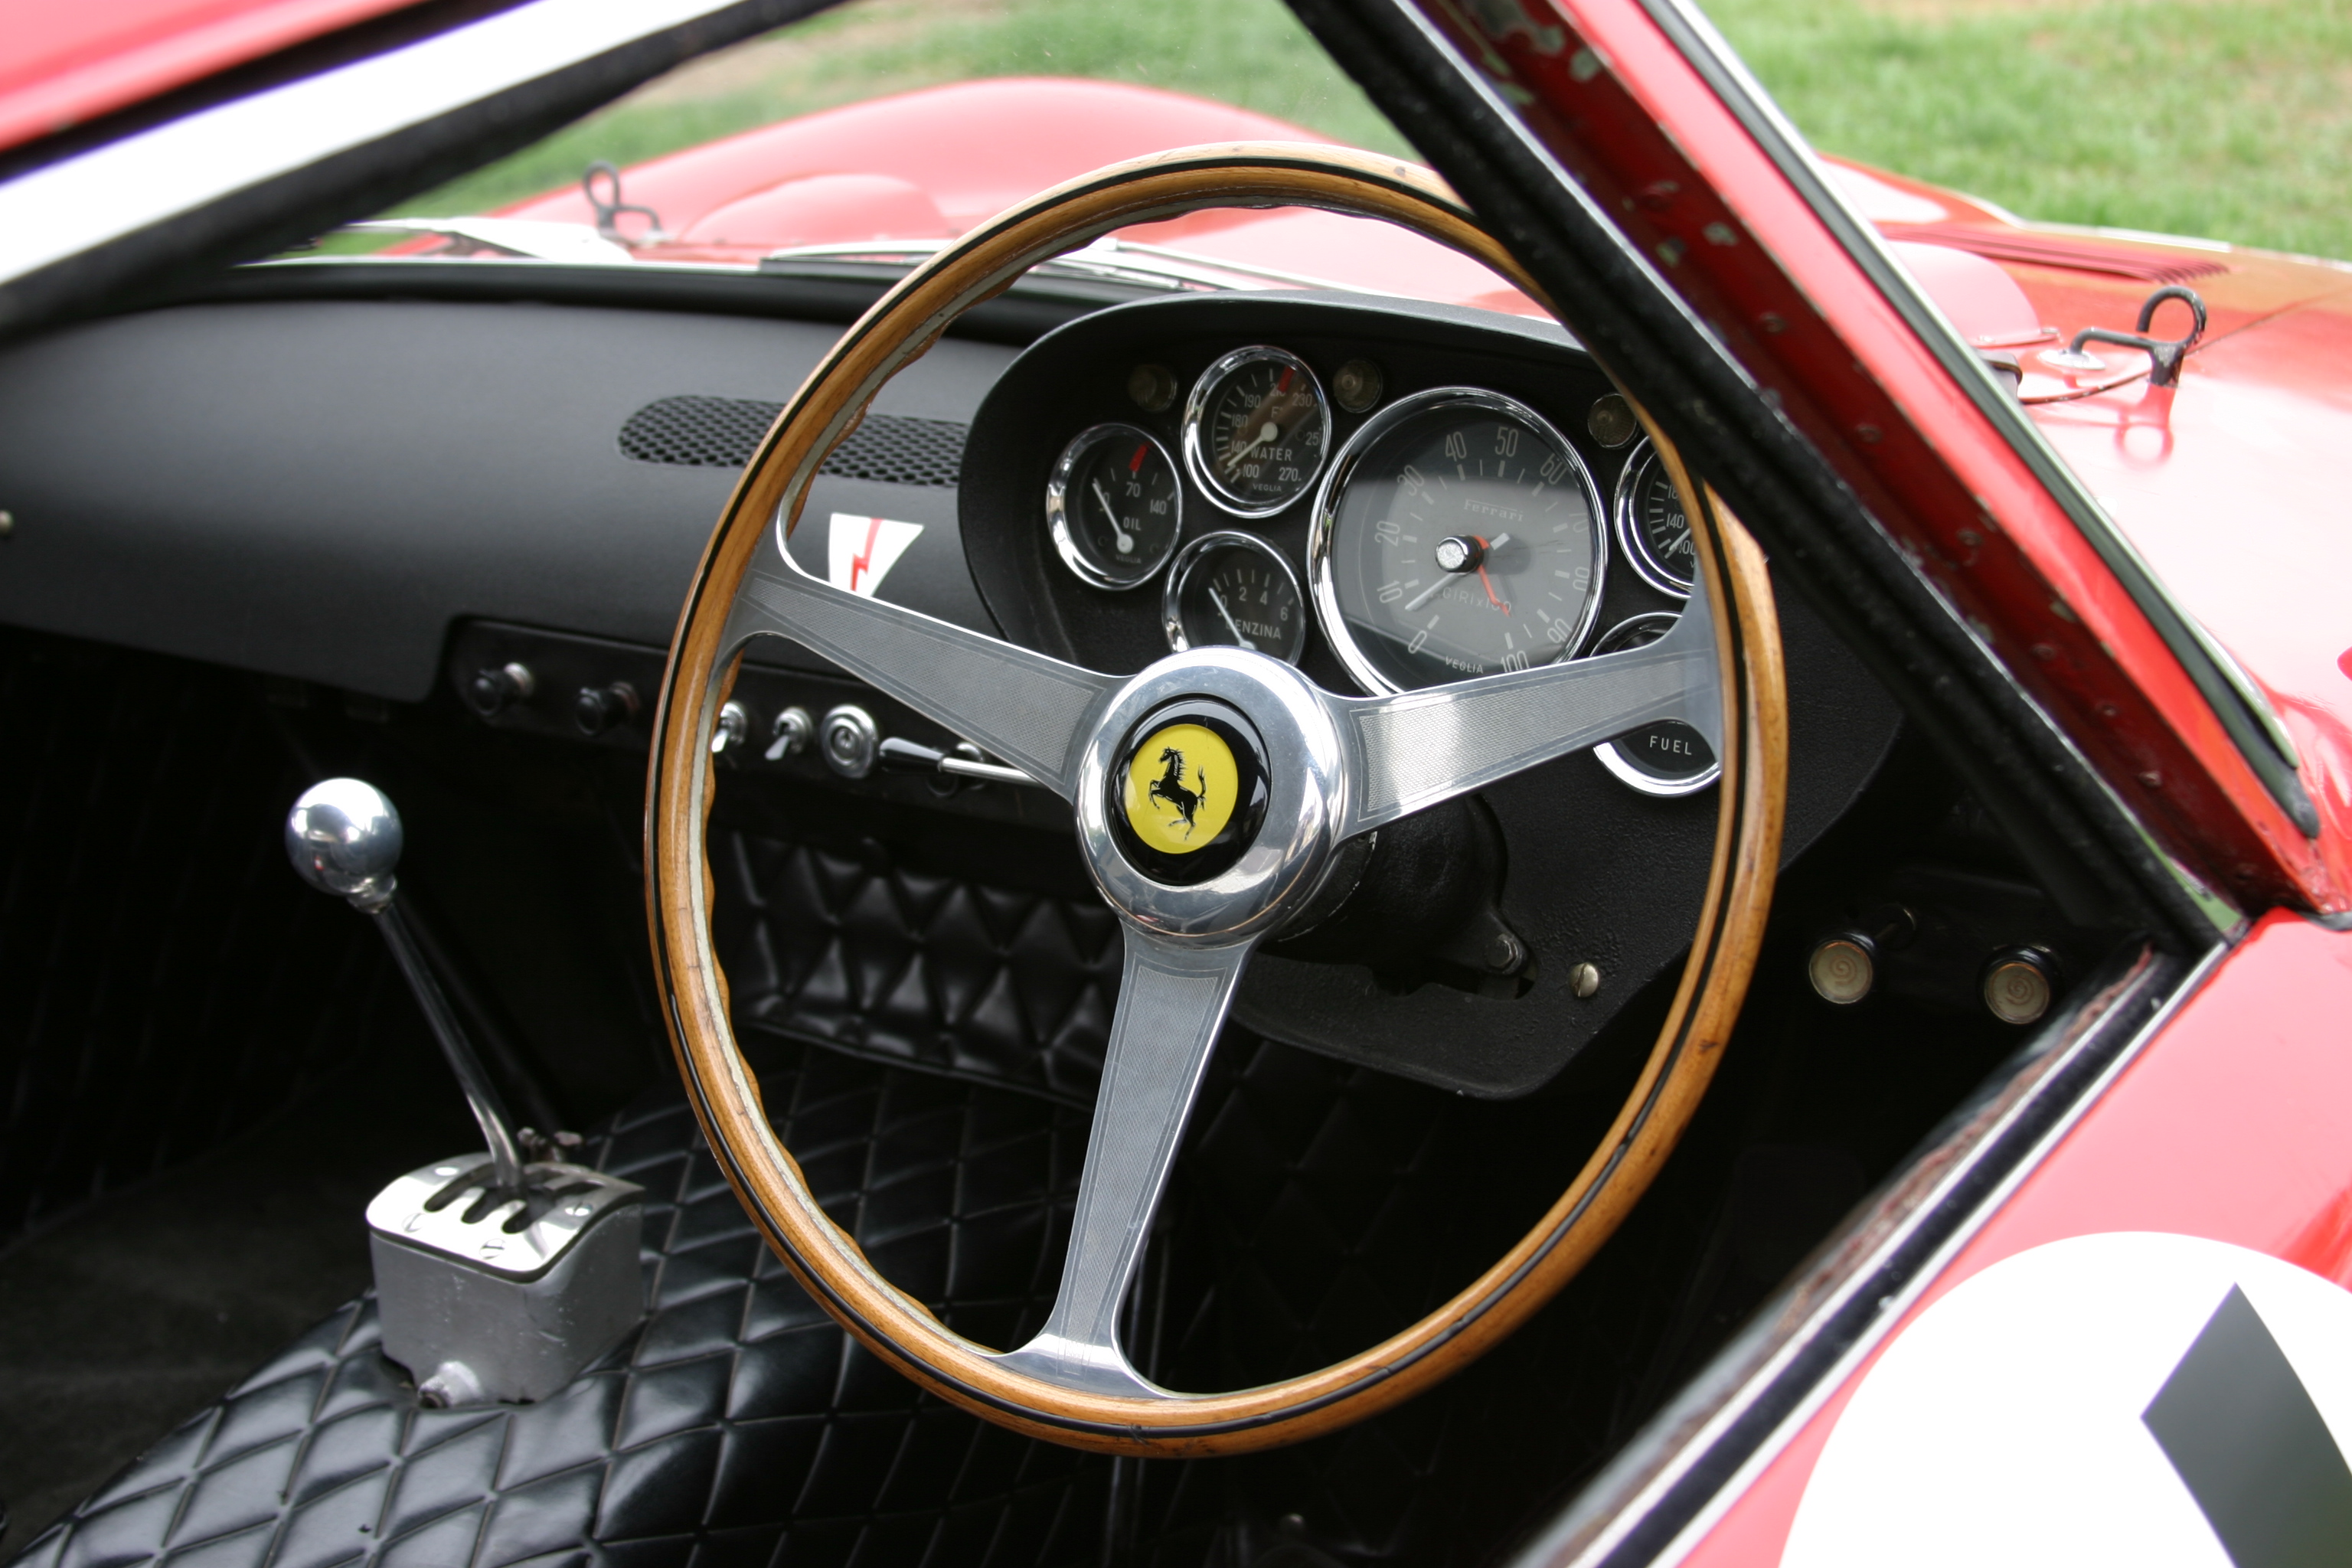 File:Ferrari 250 GTO Ser. No. 3647GT Interior